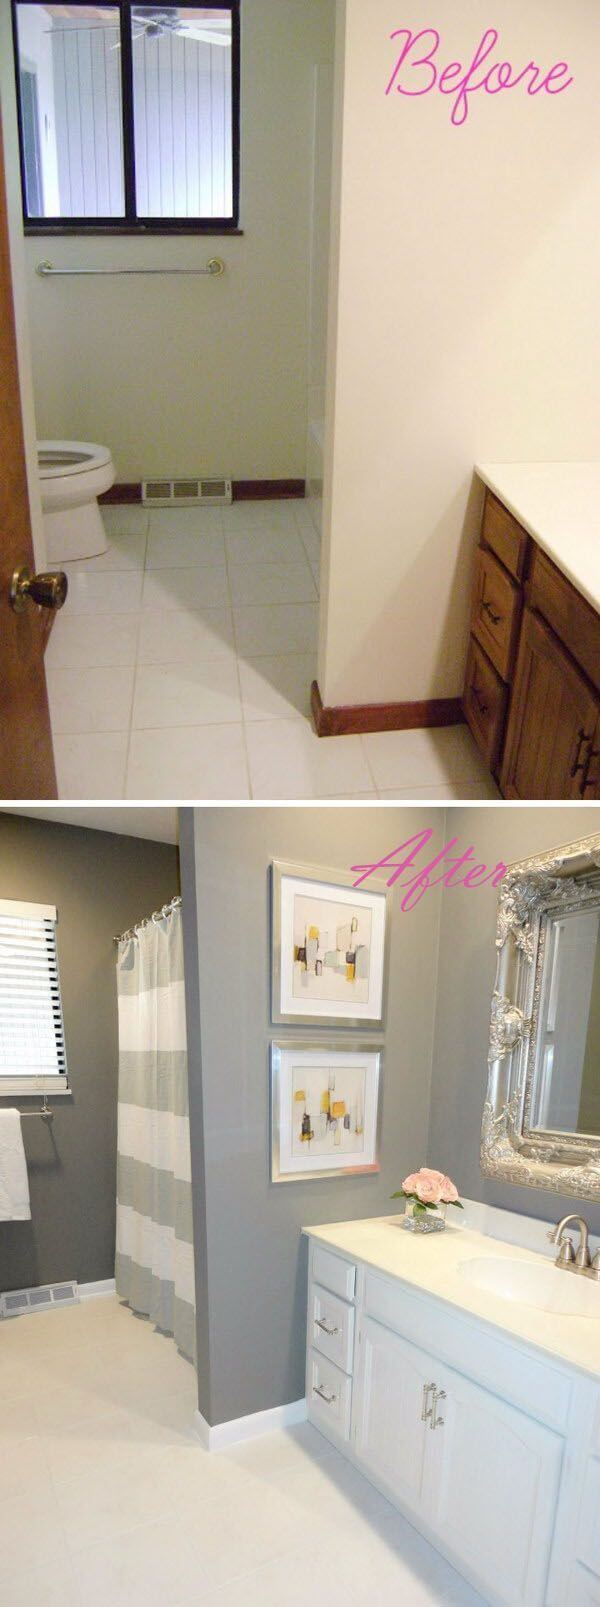 Best Budget Friendly Bathroom Makeover Ideas And Designs For - How to update your bathroom on a budget